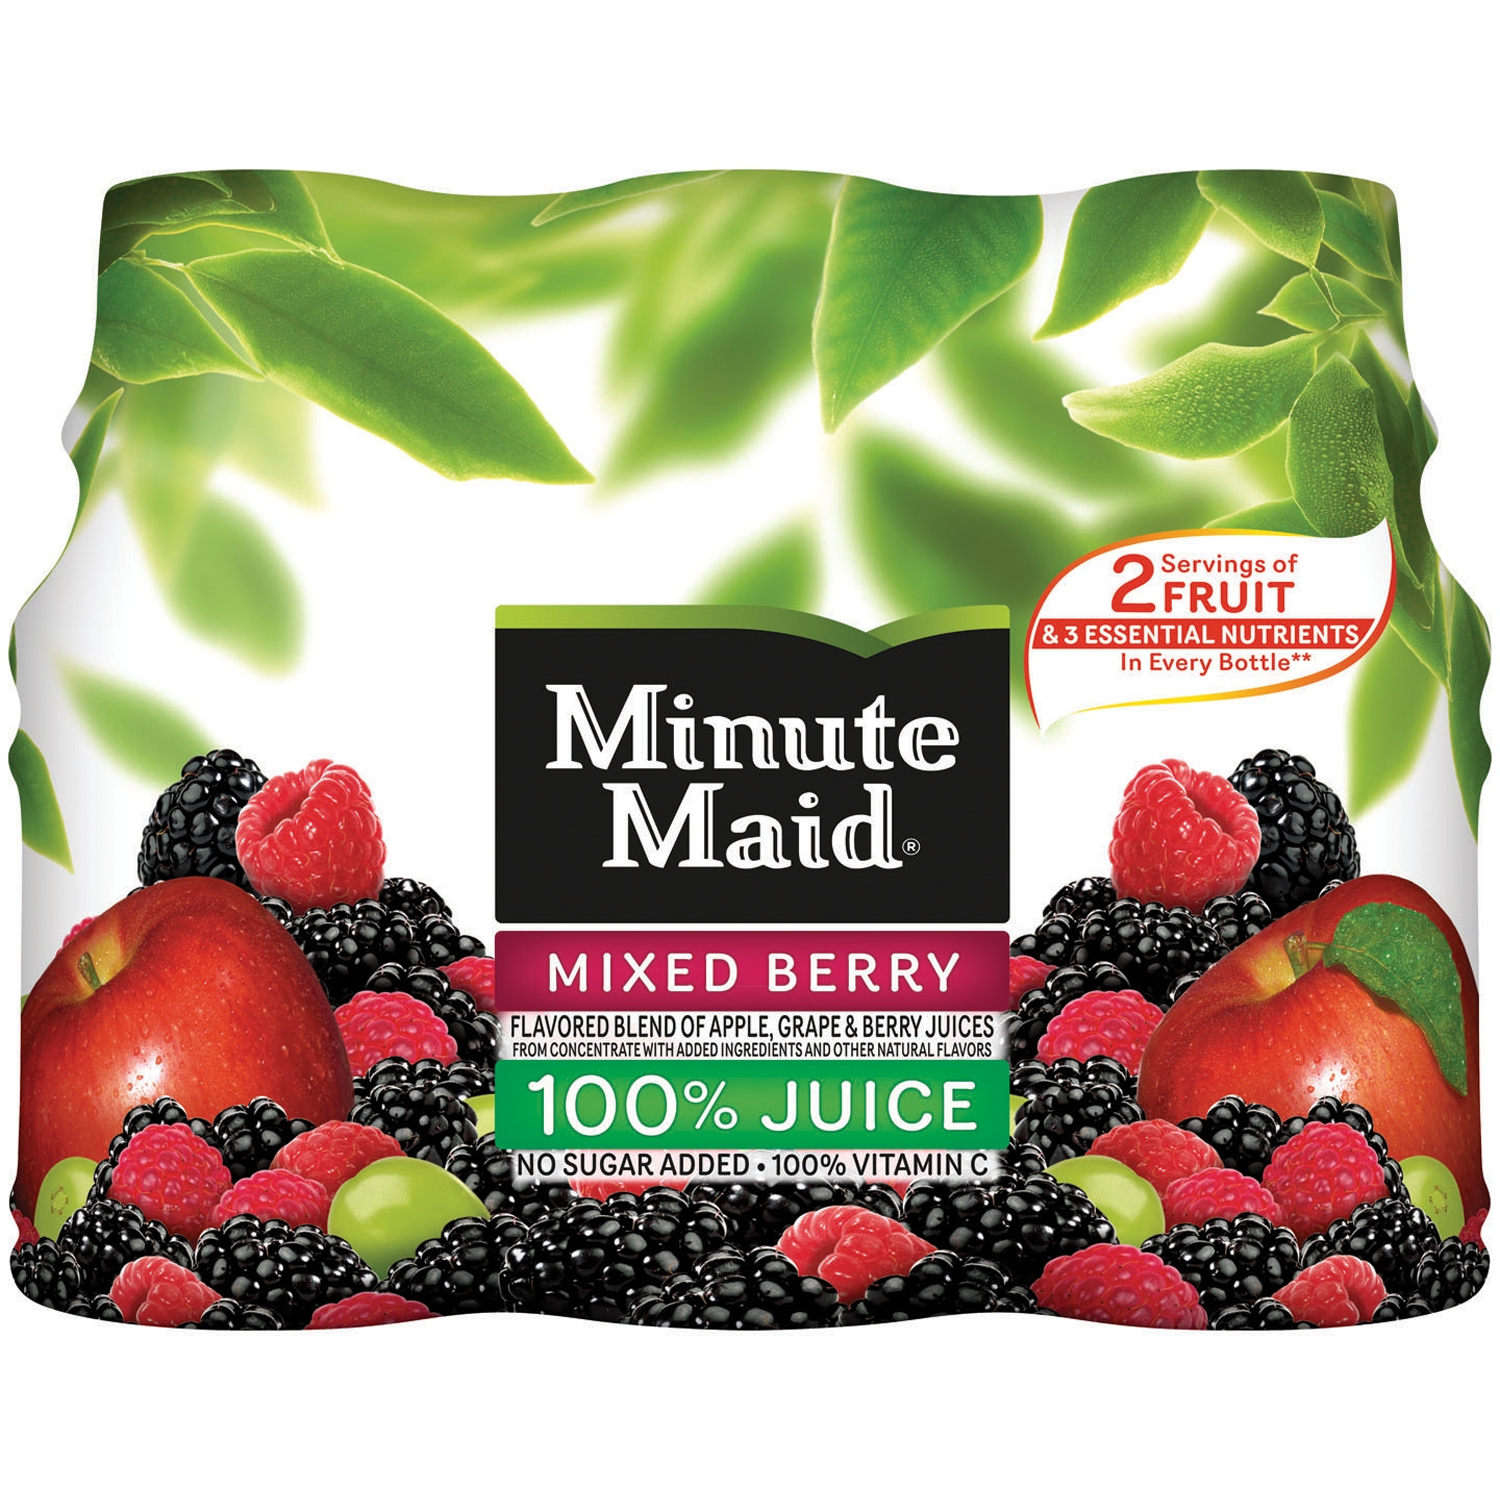 Minute Maid Mixed Berry Juice Drink, 10 fl oz, 6 pack